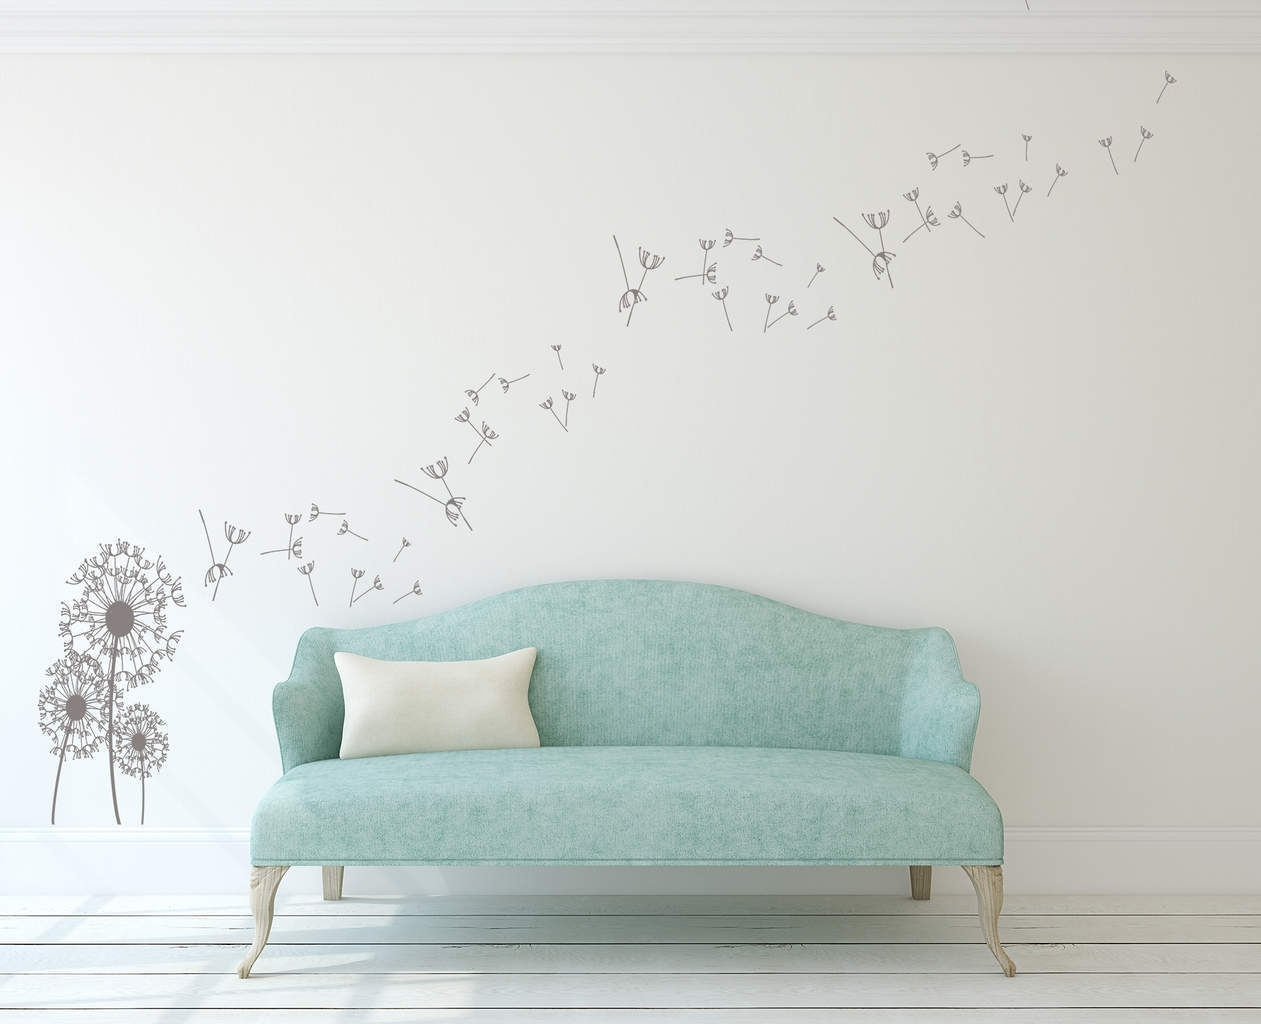 Dandelion Wall Art Decal | Dandelion Wall Decal Sticker in Dandelion Wall Art (Image 6 of 20)